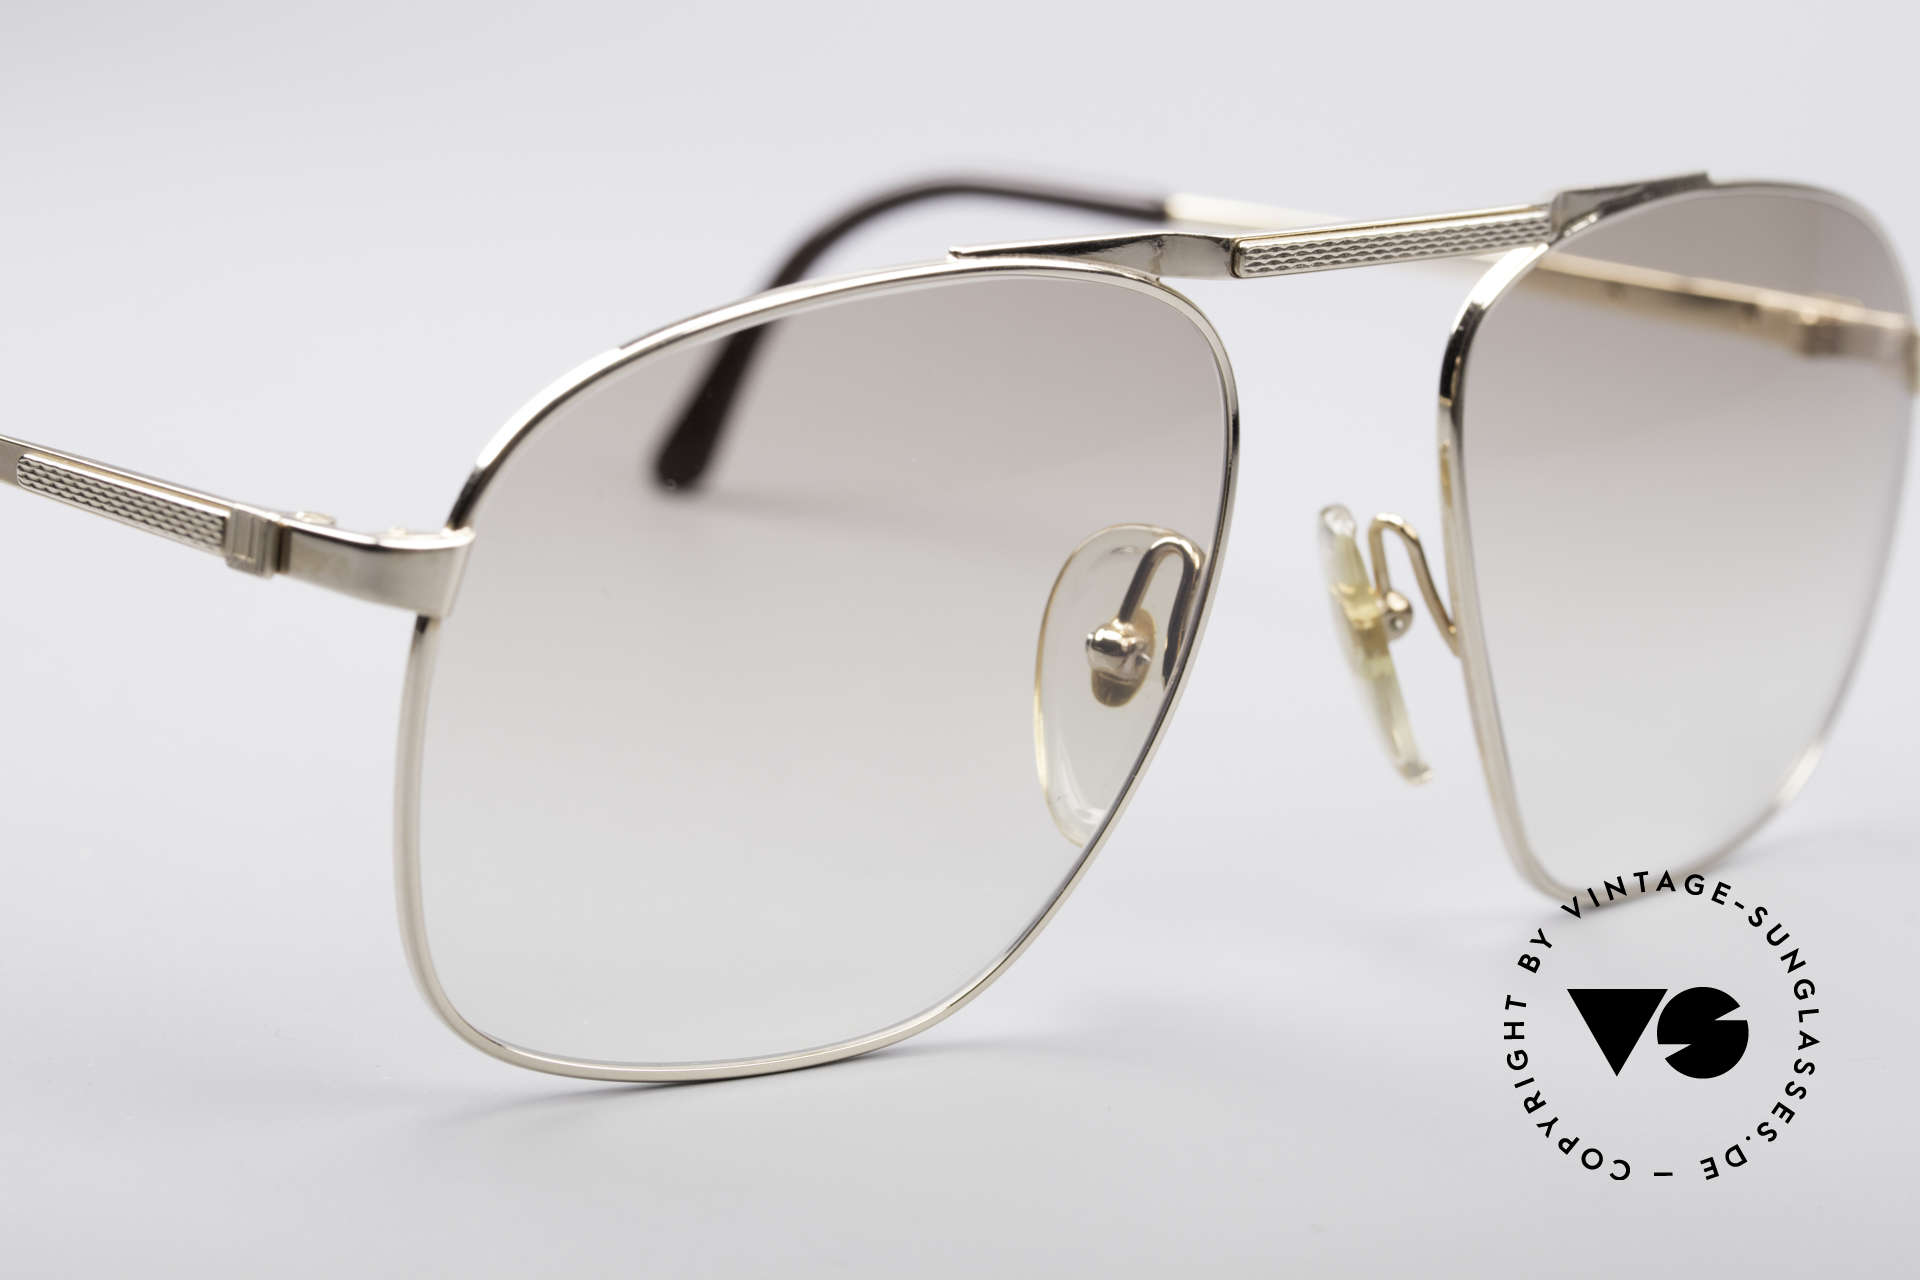 Dunhill 6046 80's Luxury Frame Gold Plated, new old stock (like all our vintage luxury sunglases), Made for Men